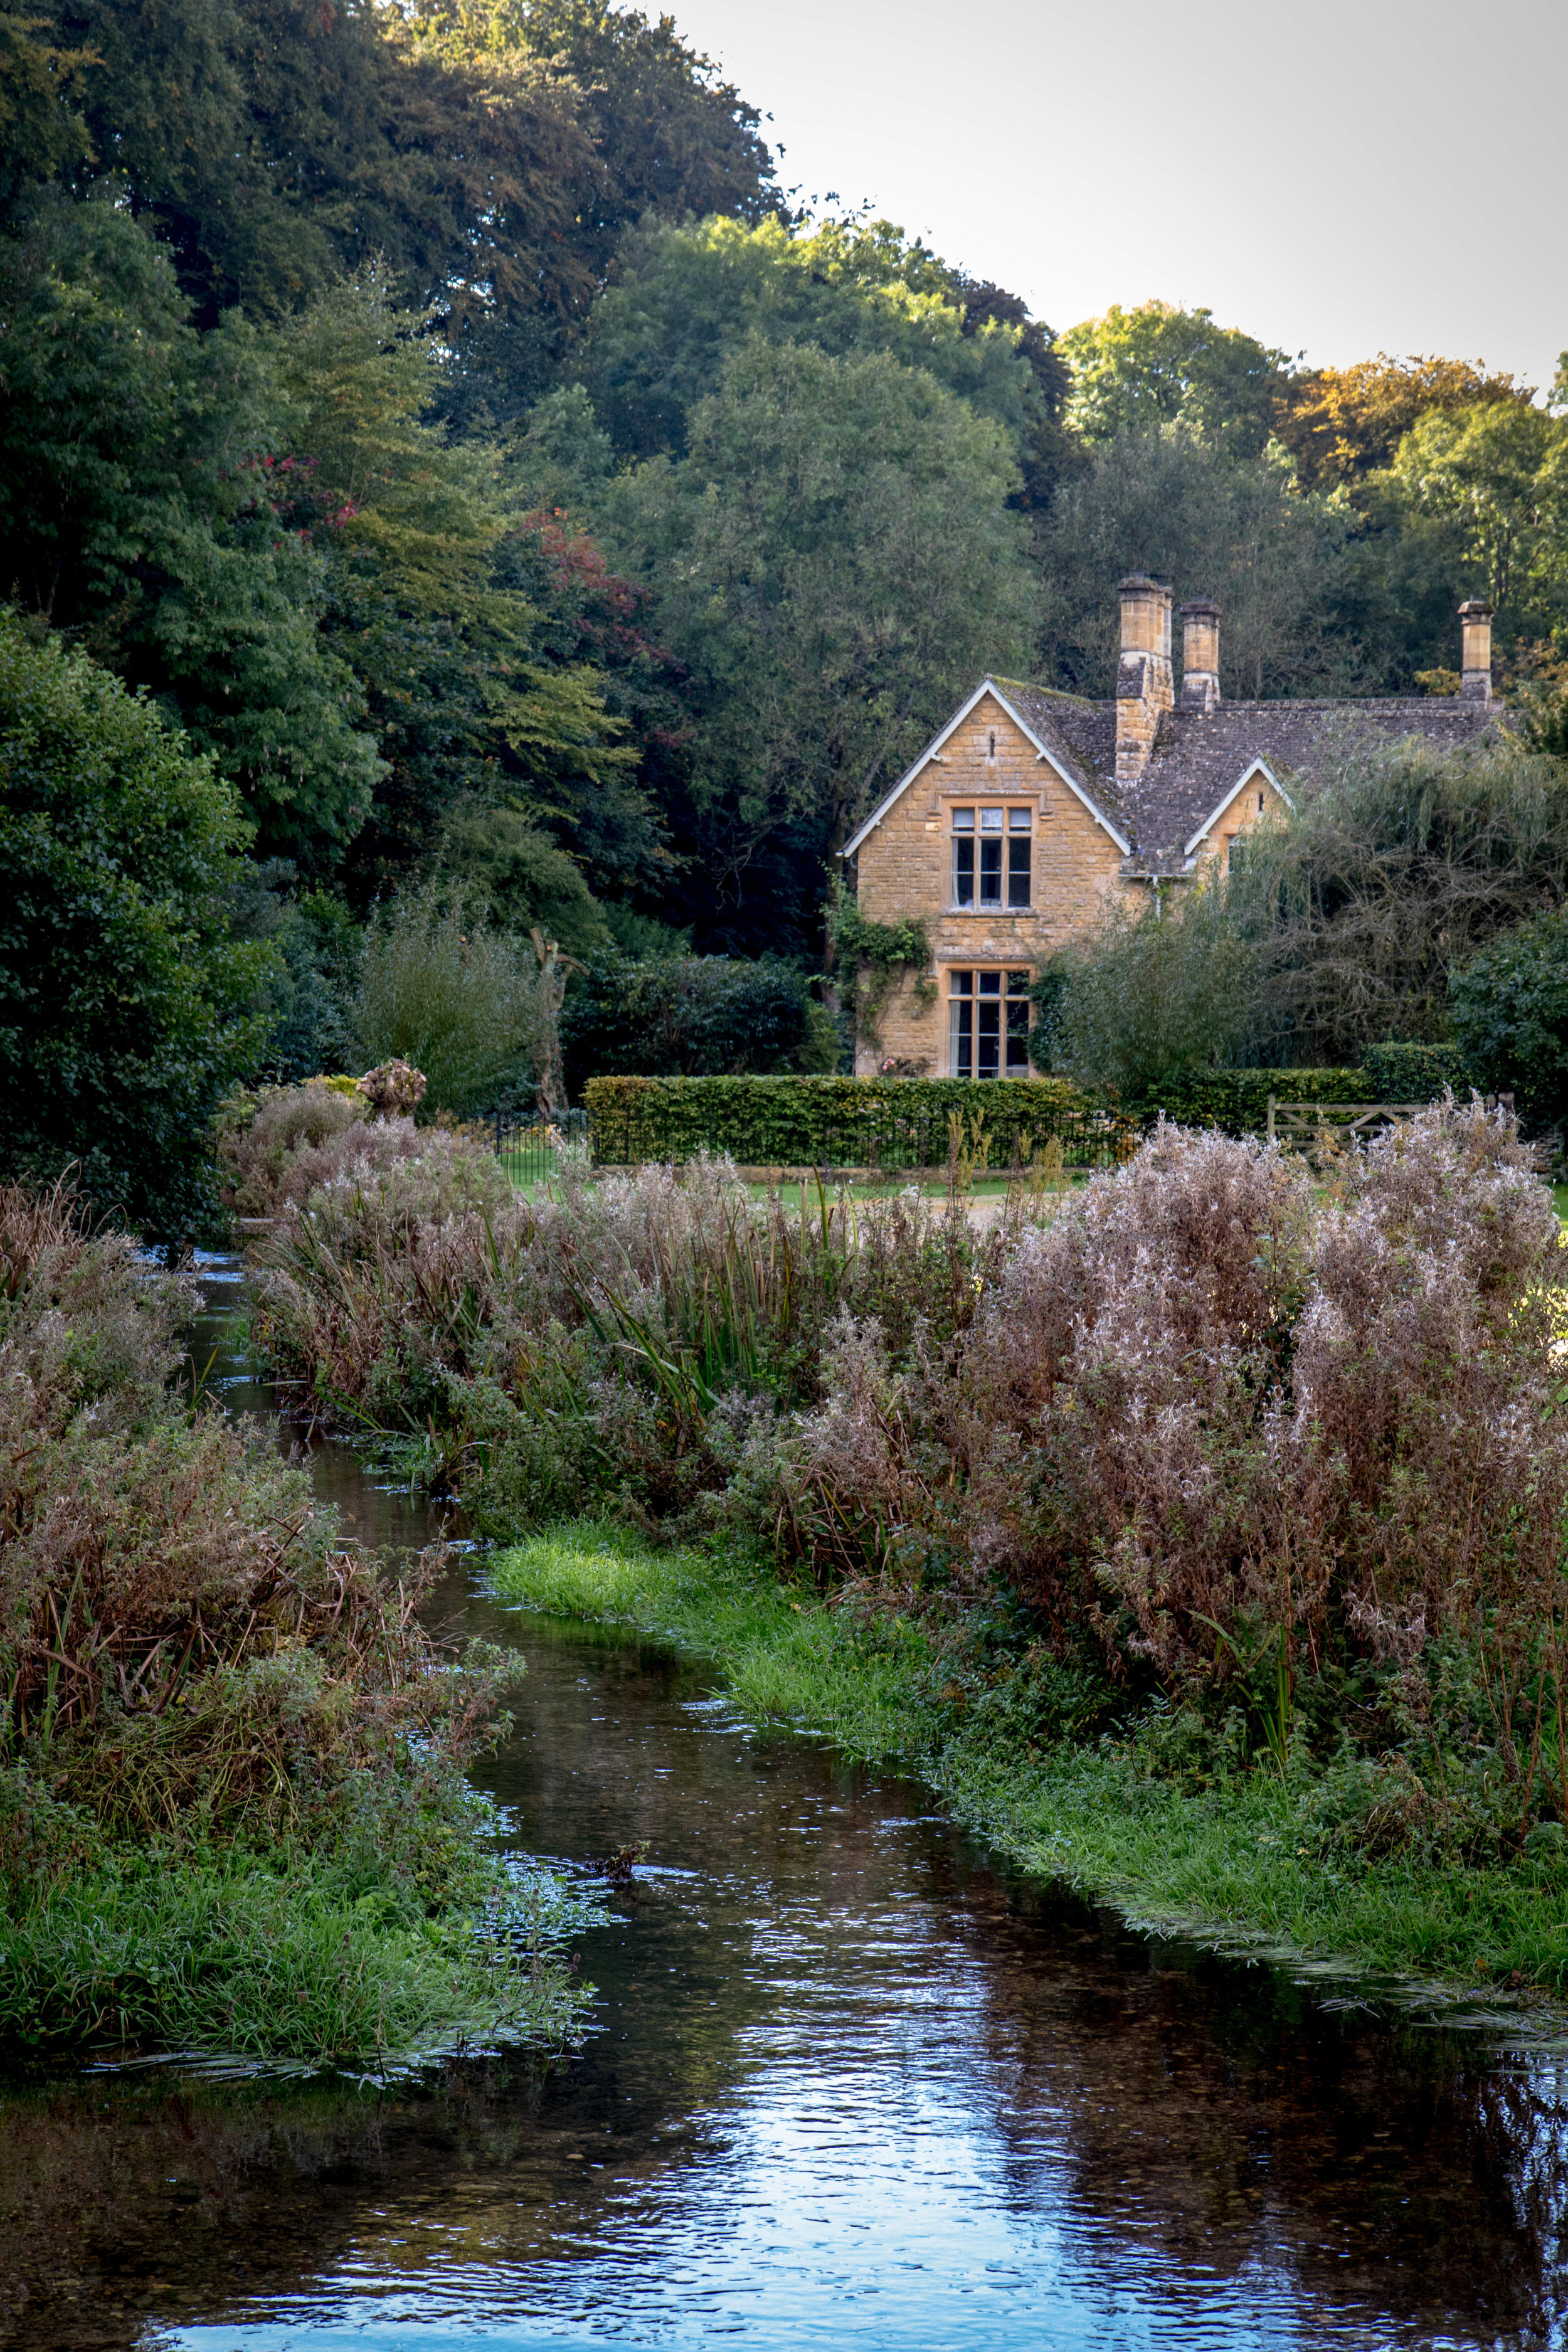 Upper Slaughter Cotswolds - Shannon Hammond Photography